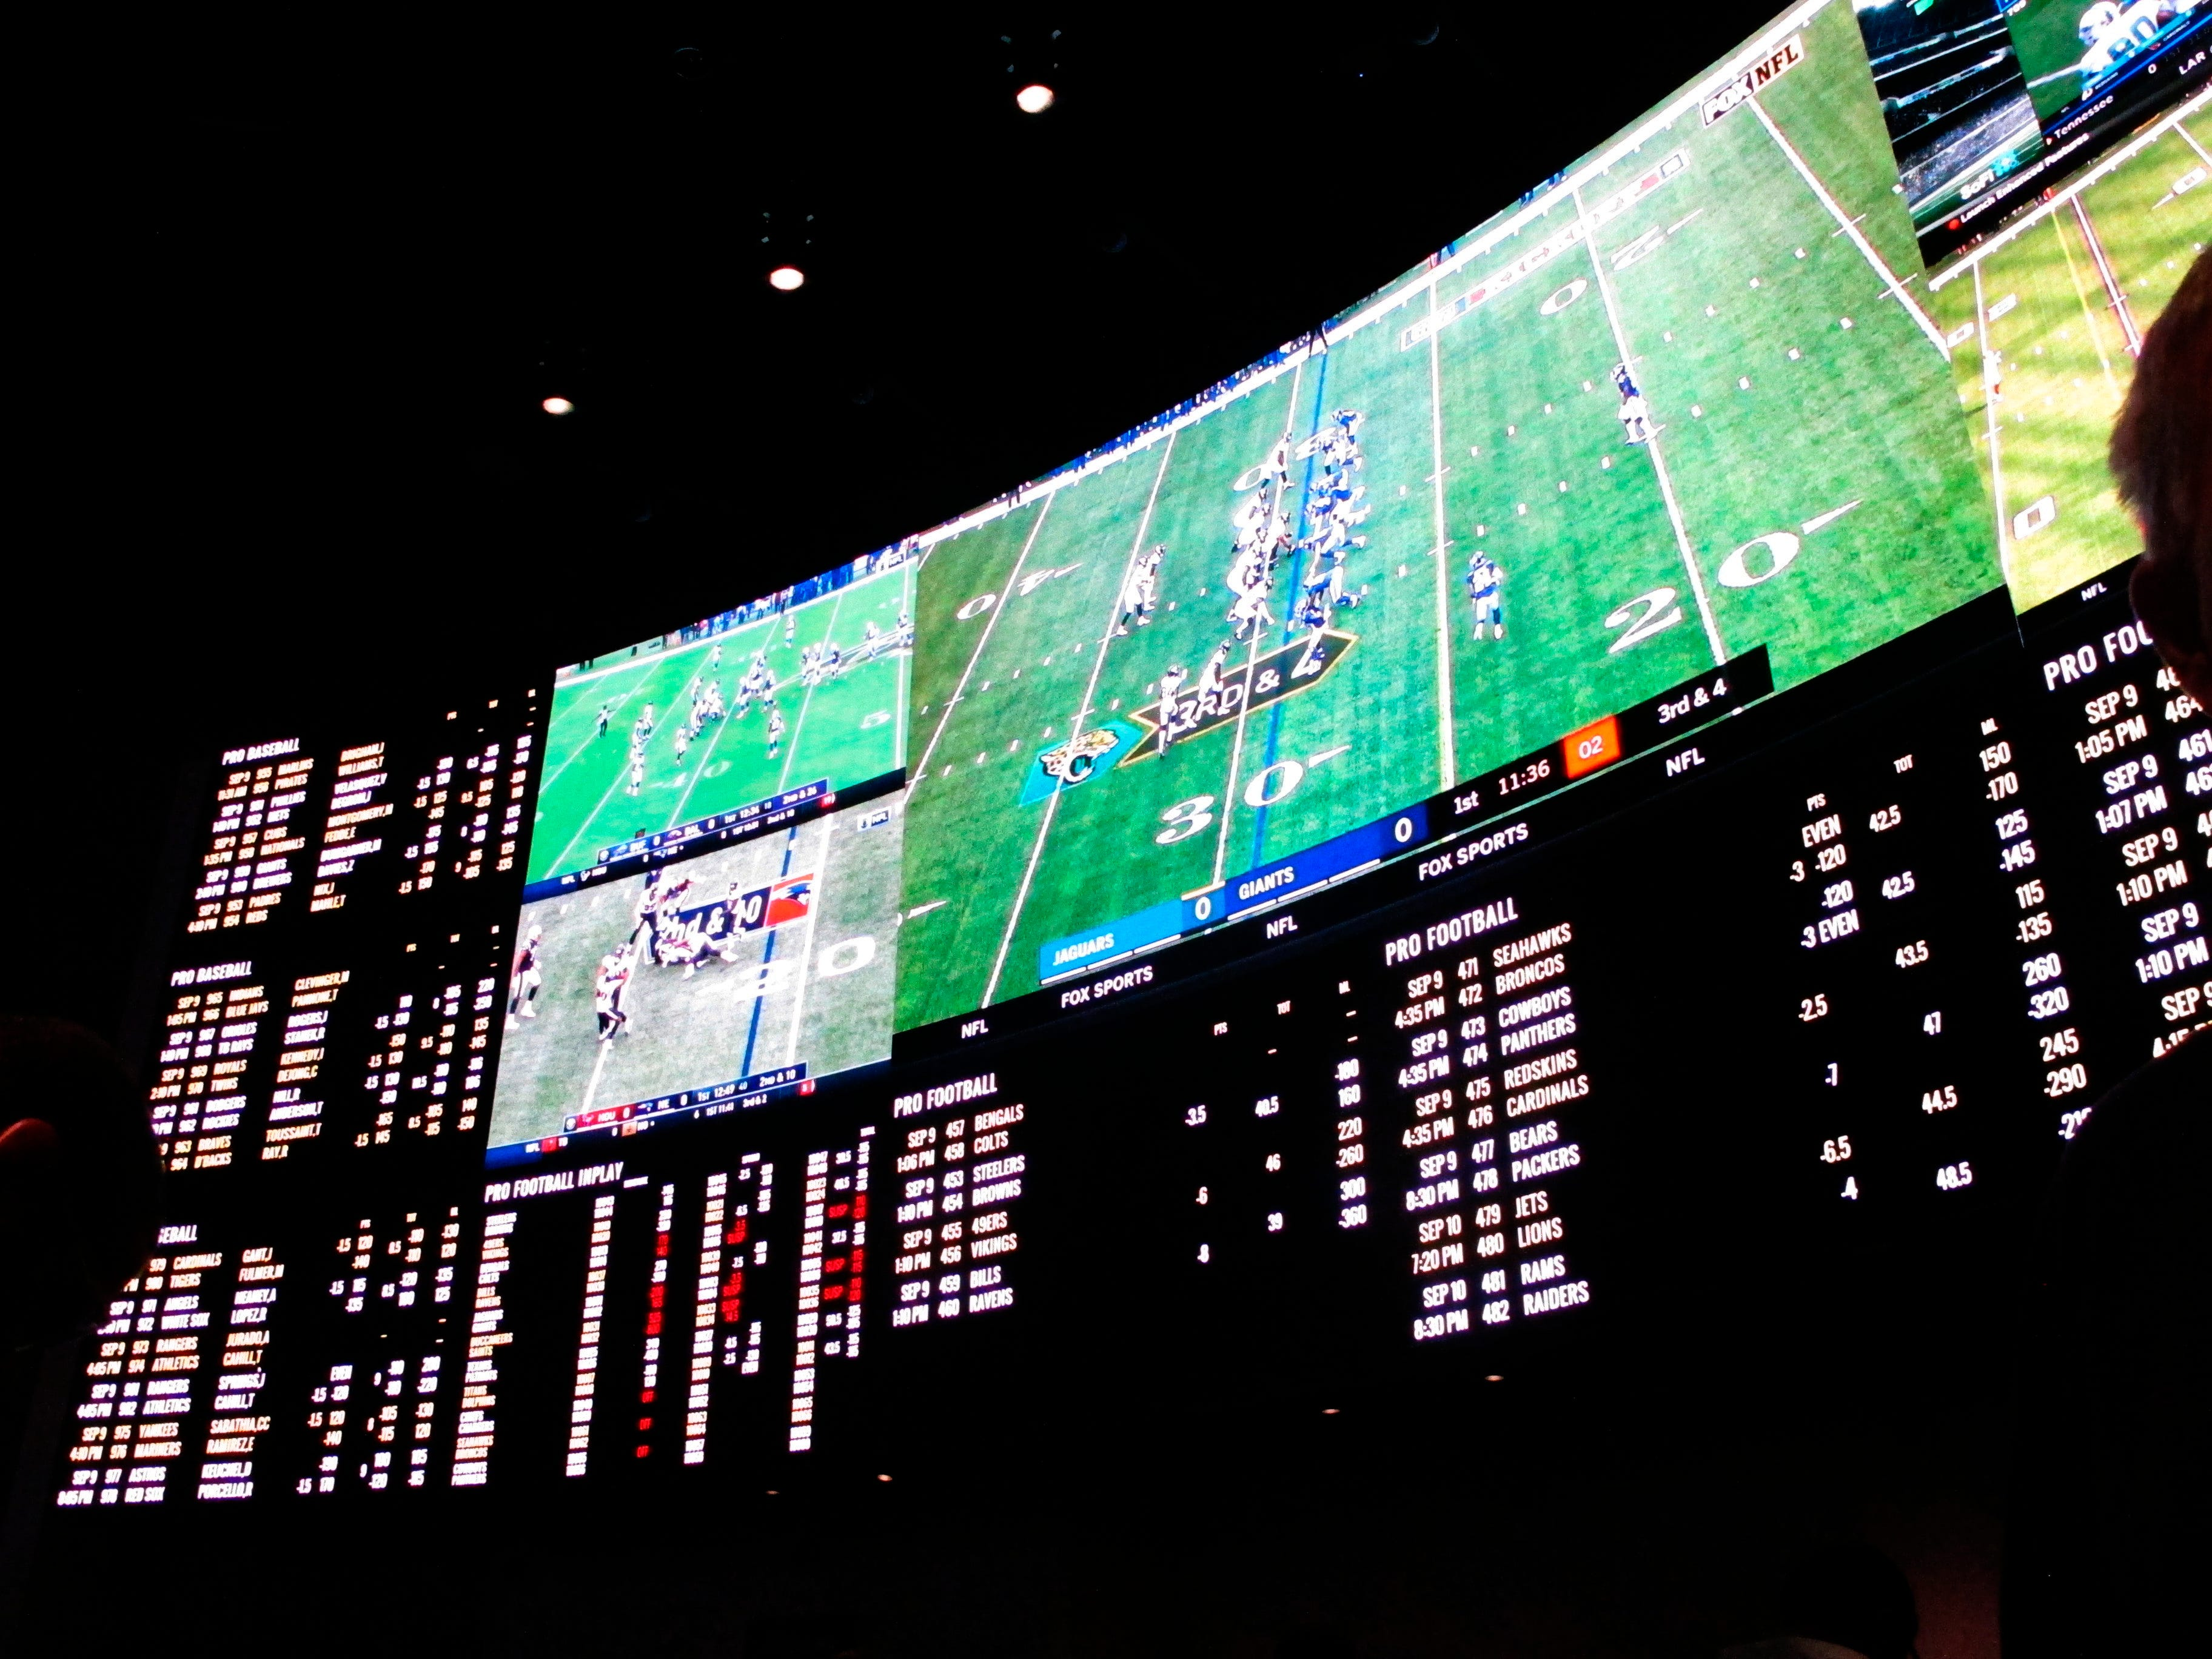 Sports betting: Ted Leonsis sees pro leagues, tech giants partnering